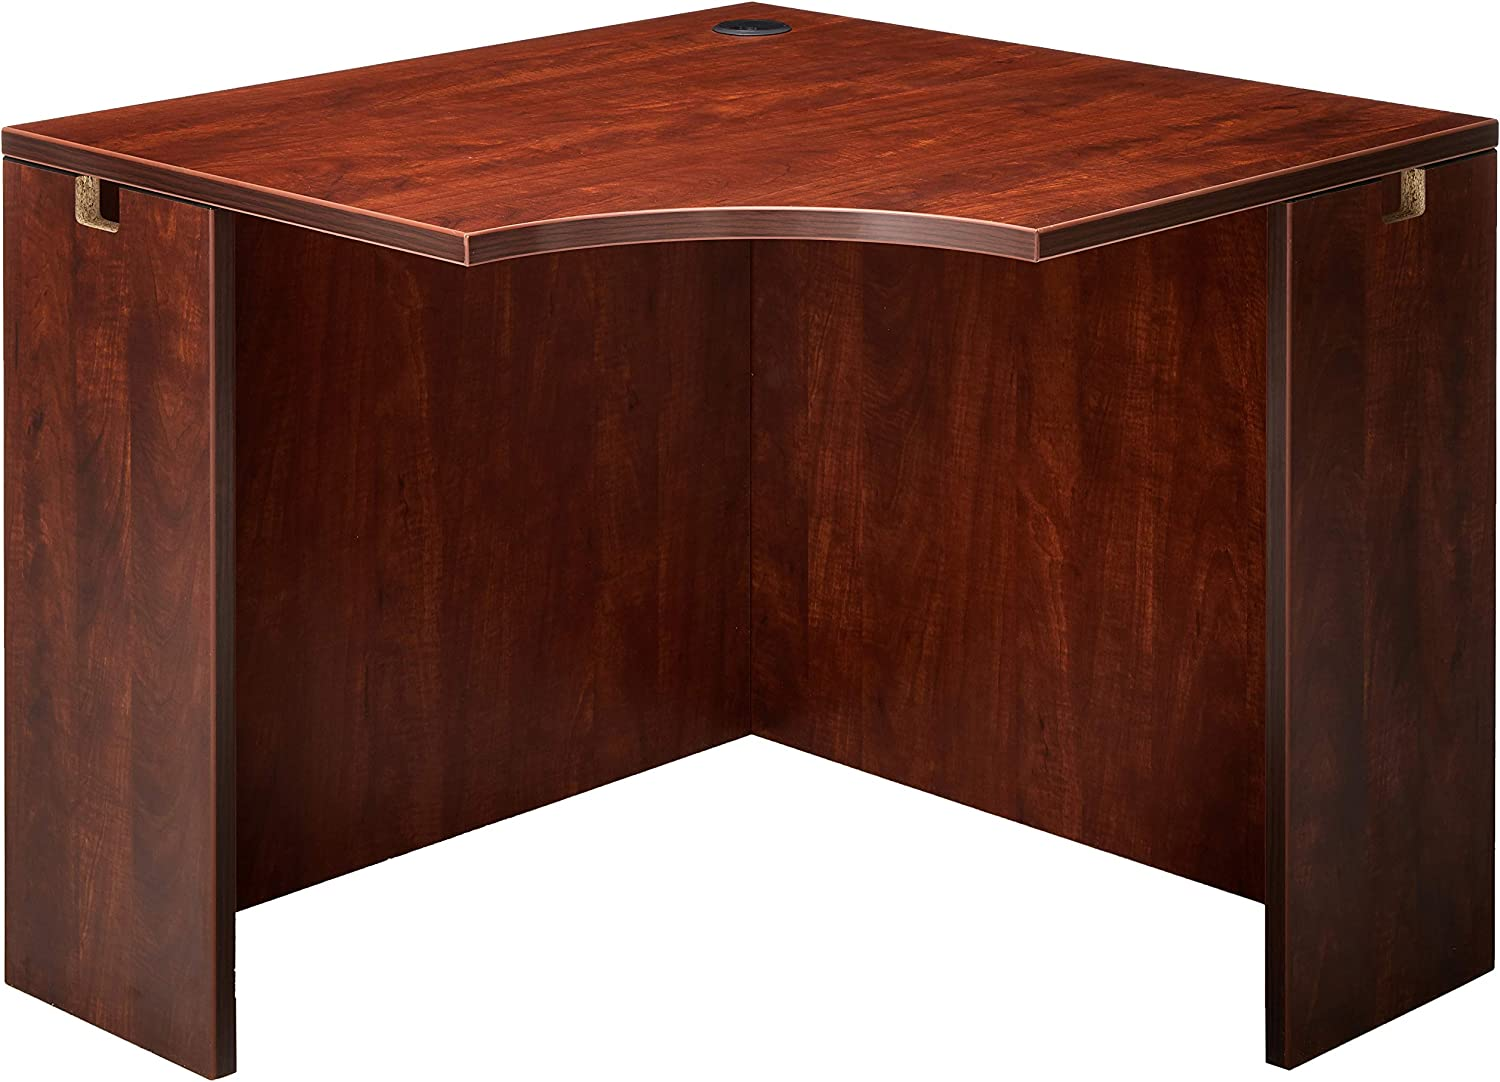 Lorell Corner Desk, Cherry, 36 by 42 by 29-1/2-Inch